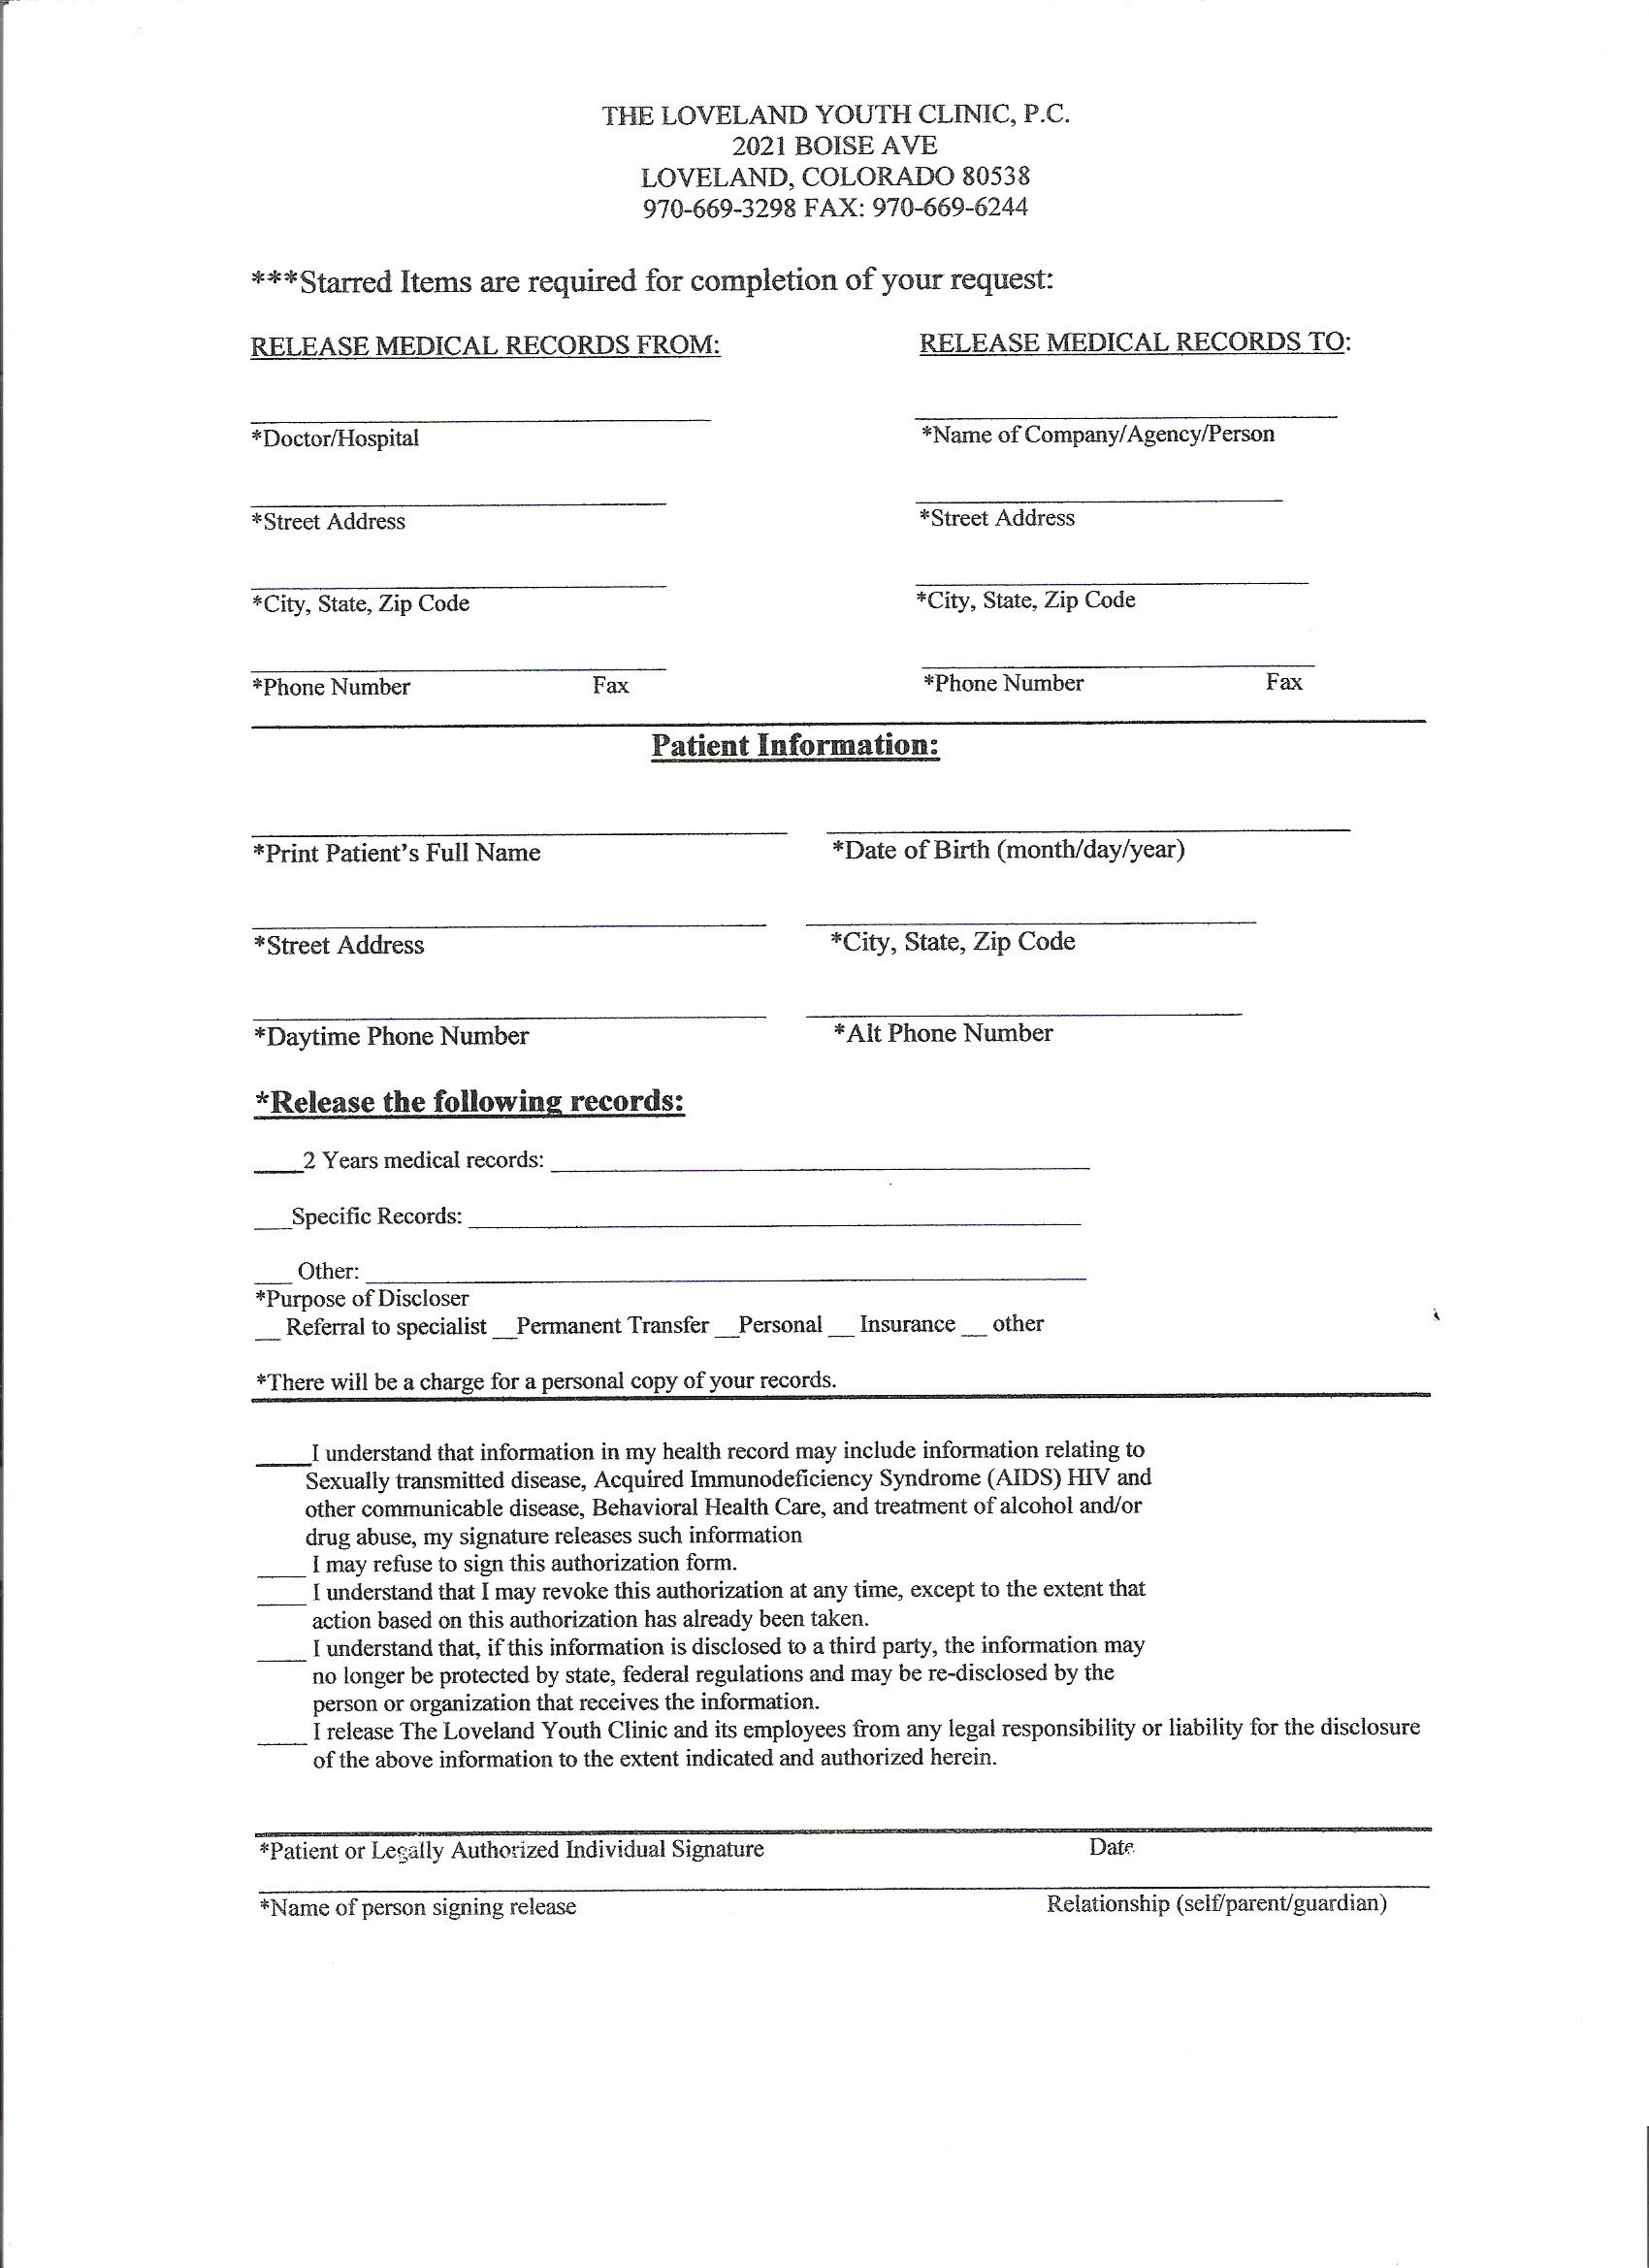 005 Wonderful Medical Record Release Form Template High Def  Request Free PersonalFull